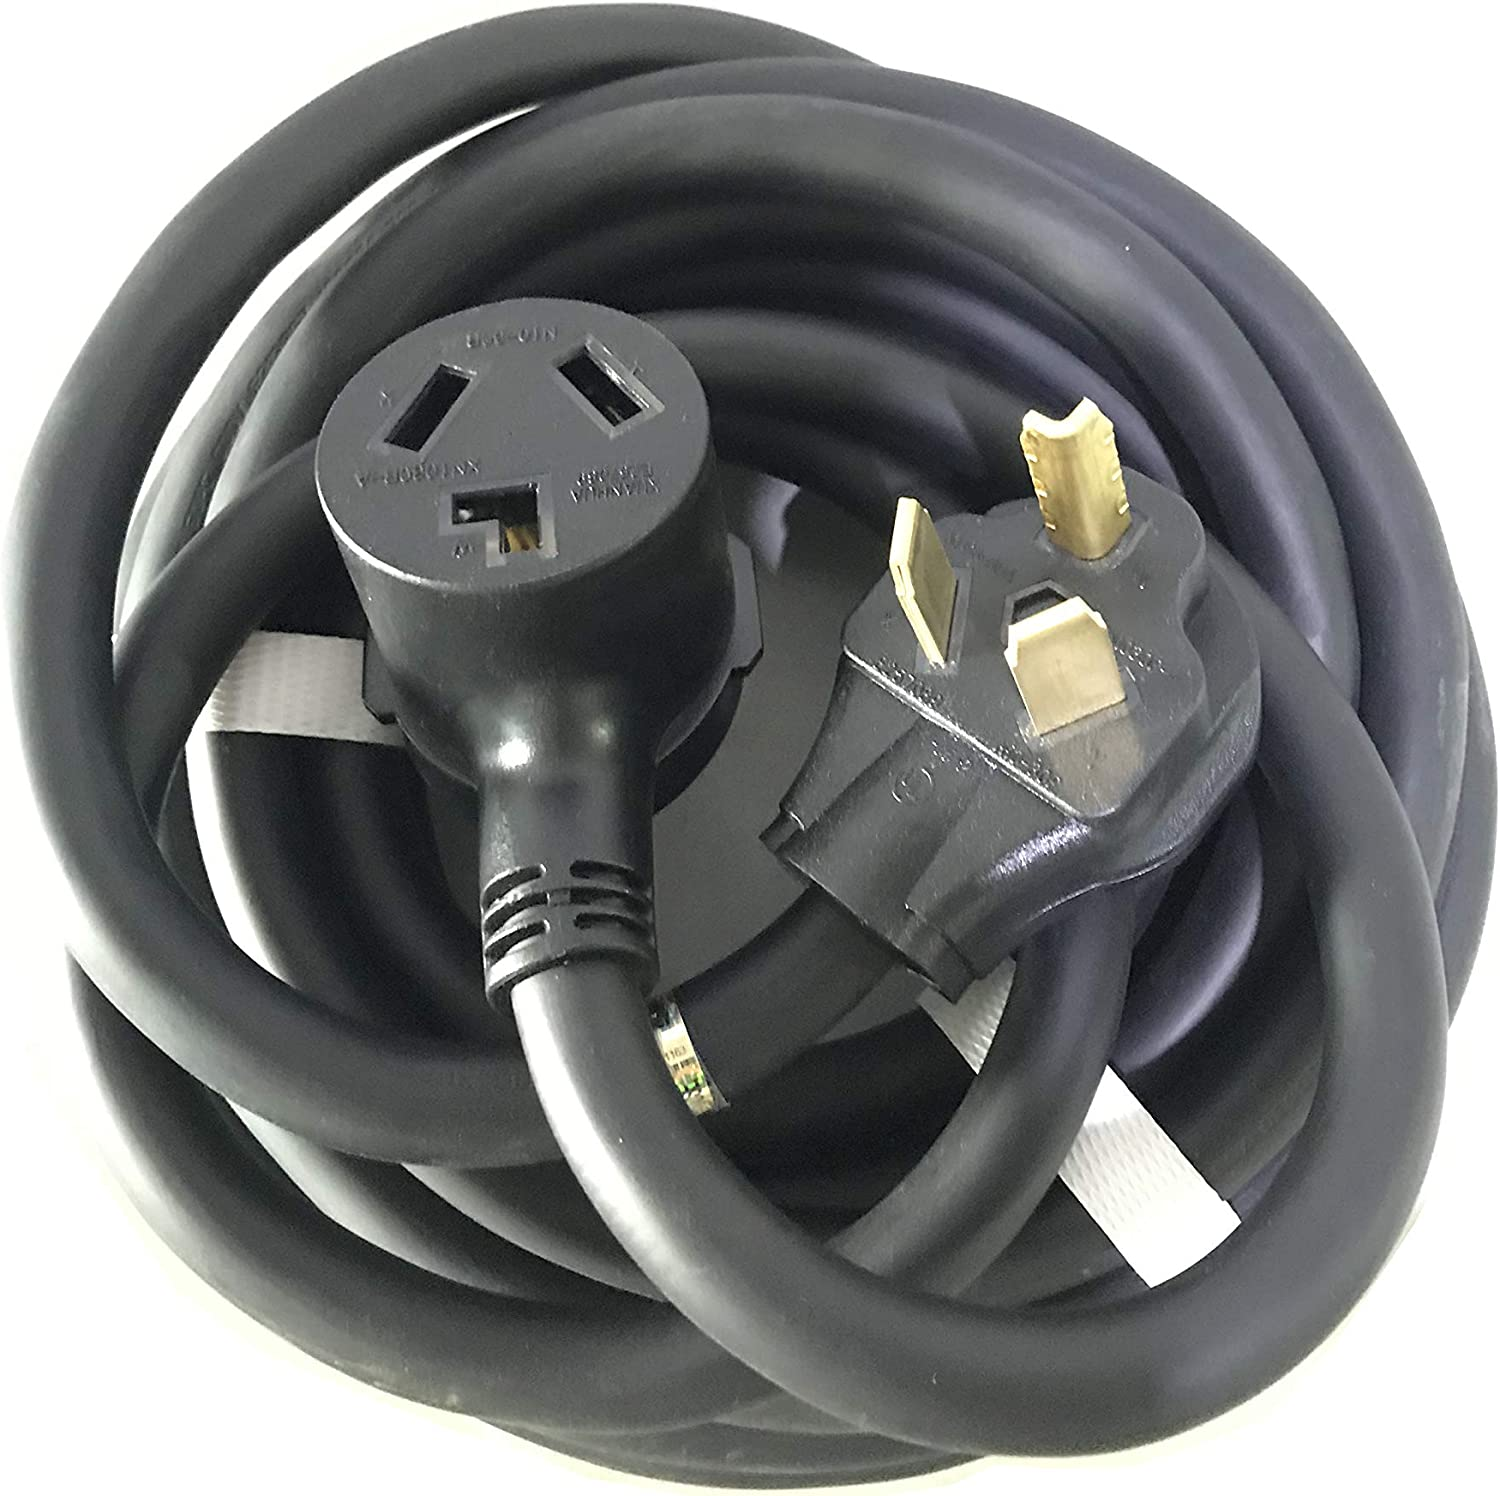 16ft 5in, 30A, 125//250 VAC or RV uses Durable casing and 10 AWG Wire for Dryer EV Safety Certified Splitvolt EGB 11-016: 100/% Copper NEMA 10-30P to 10-30R Extension Cable